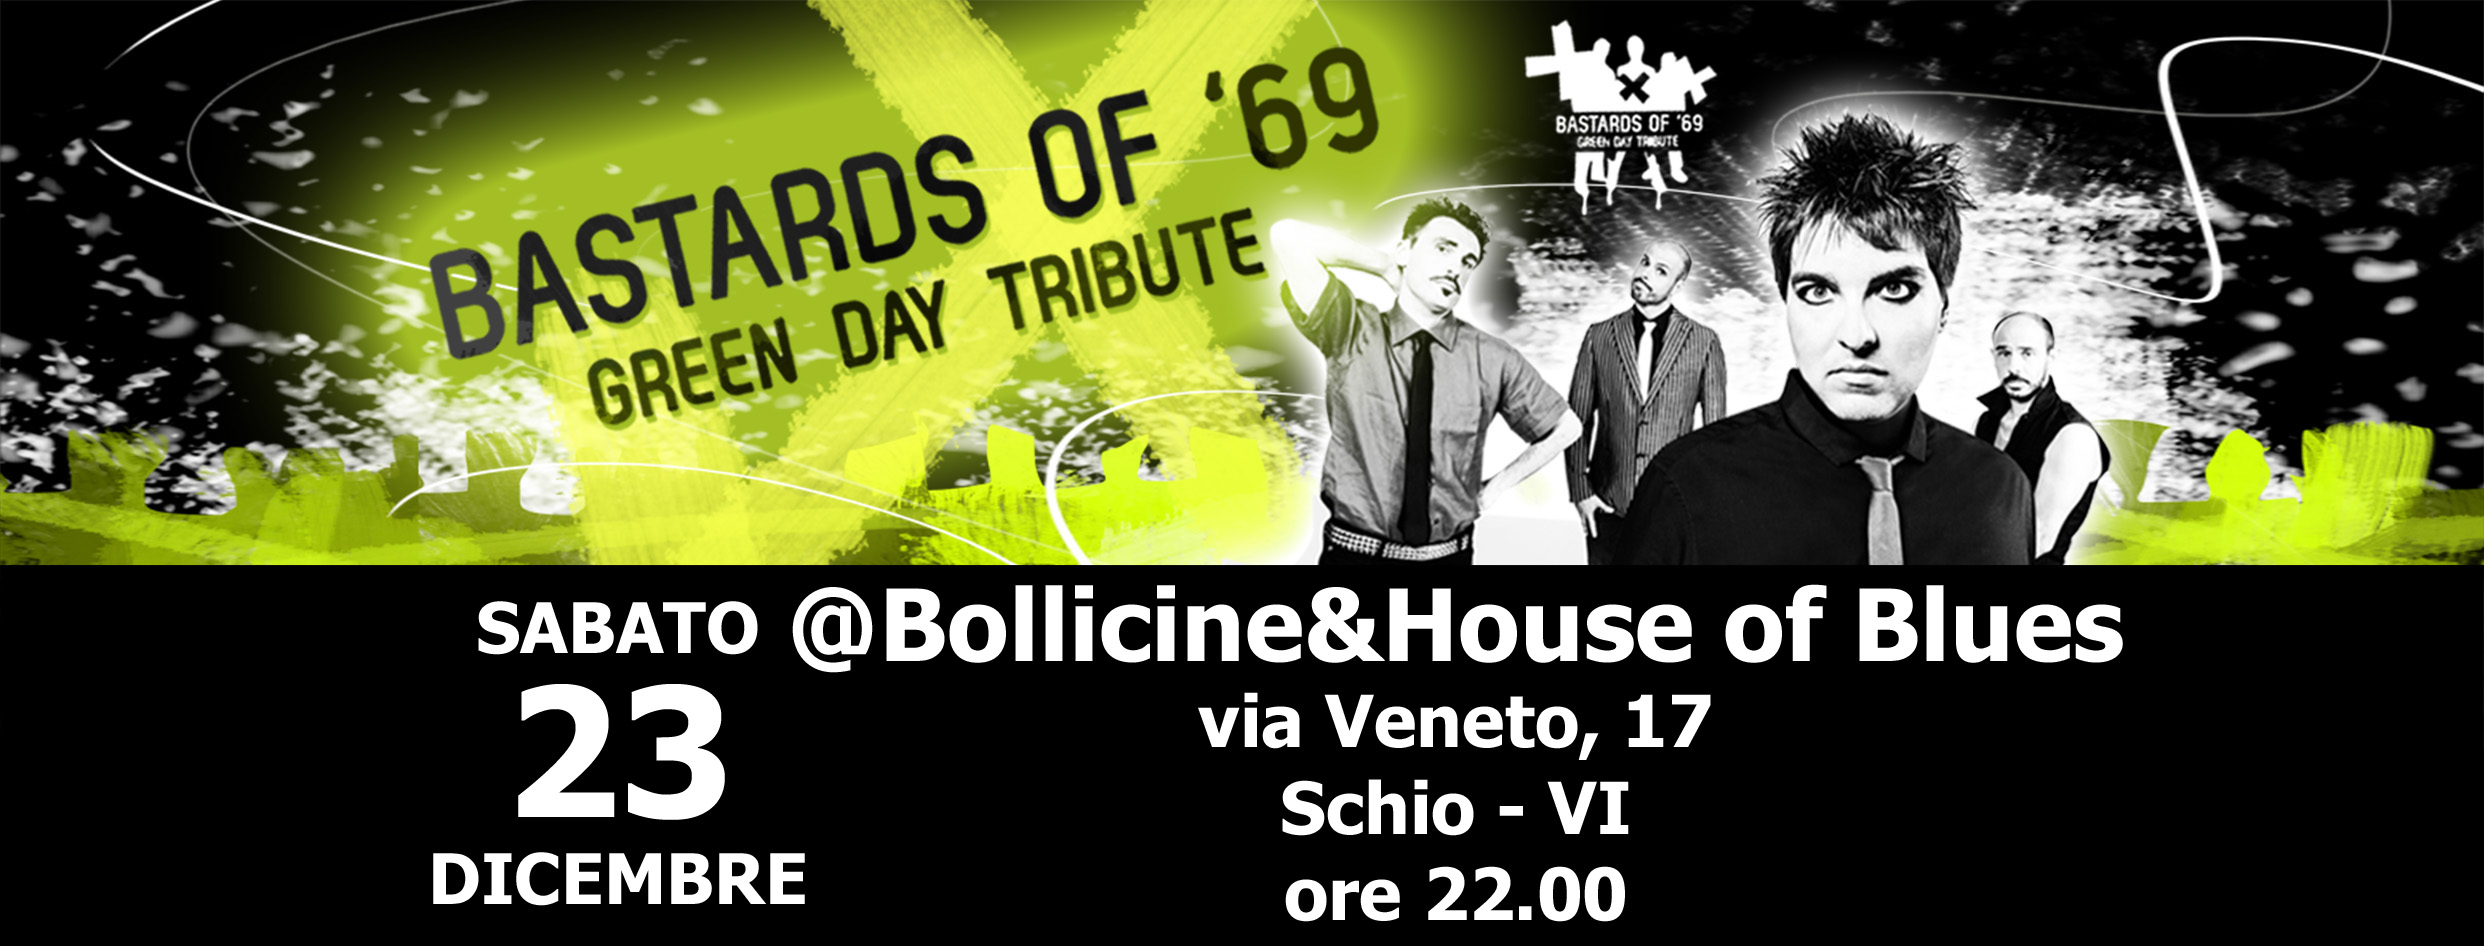 Bollicine & House of Blues